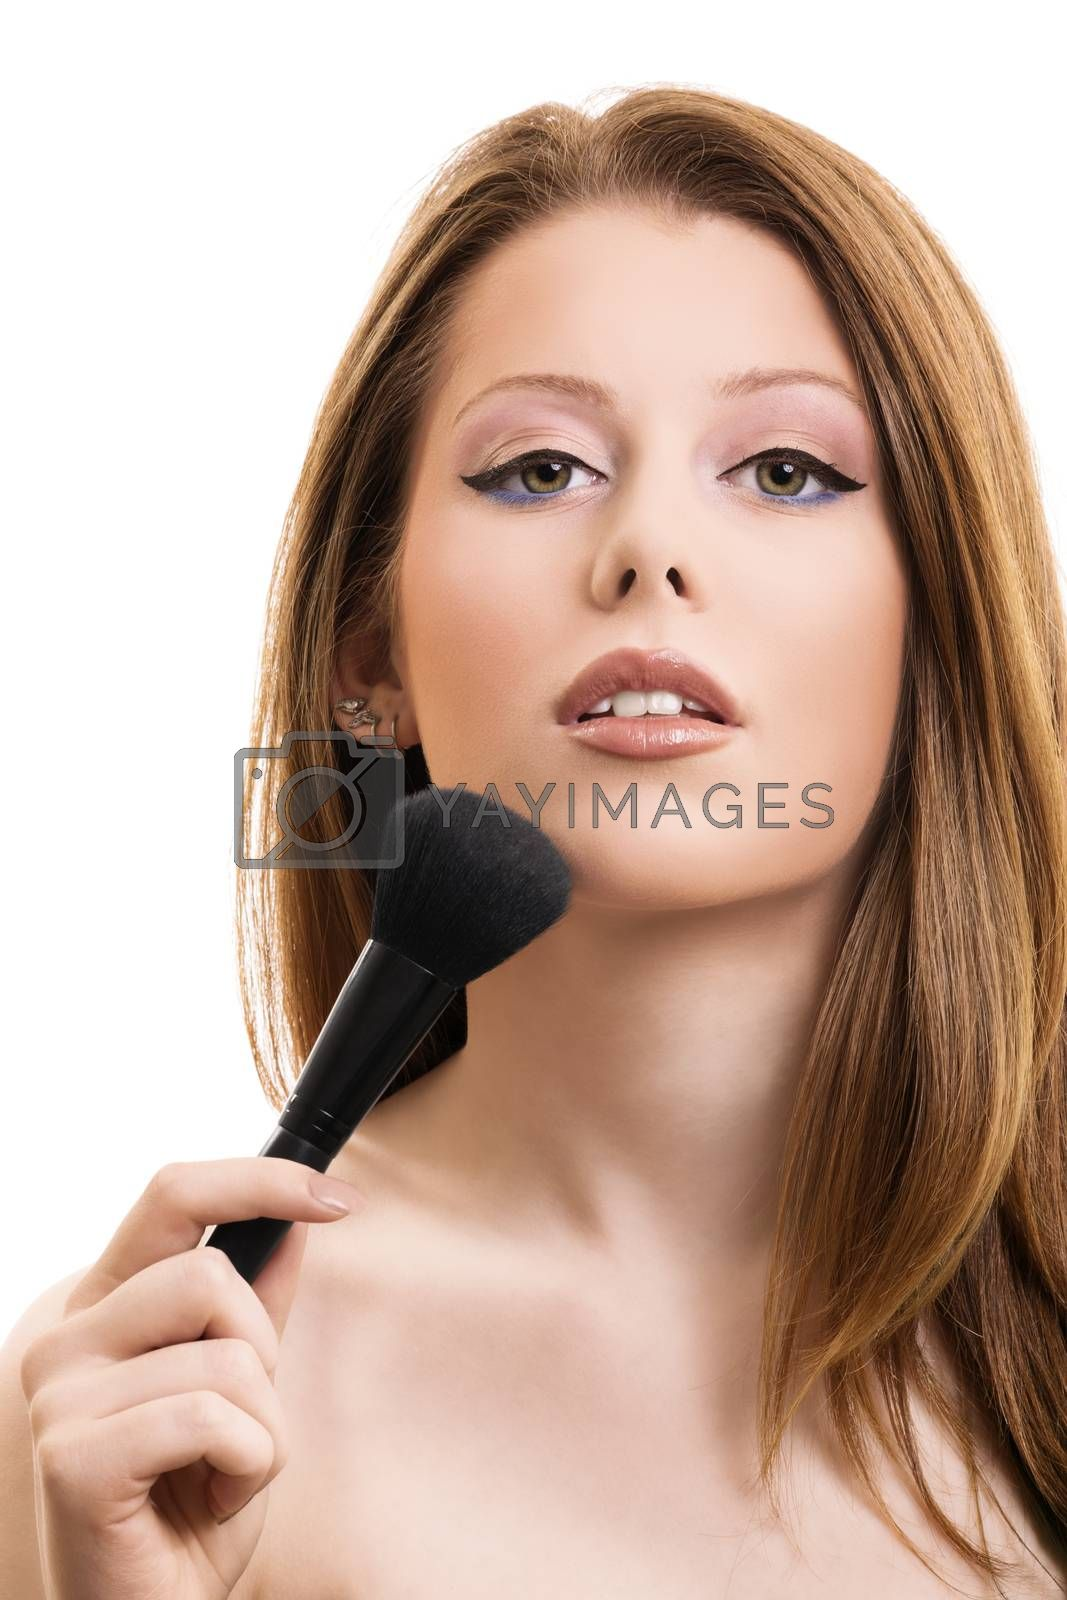 A portrait of a beautiful woman applying makeup, isolated on white background. Natural beauty look.